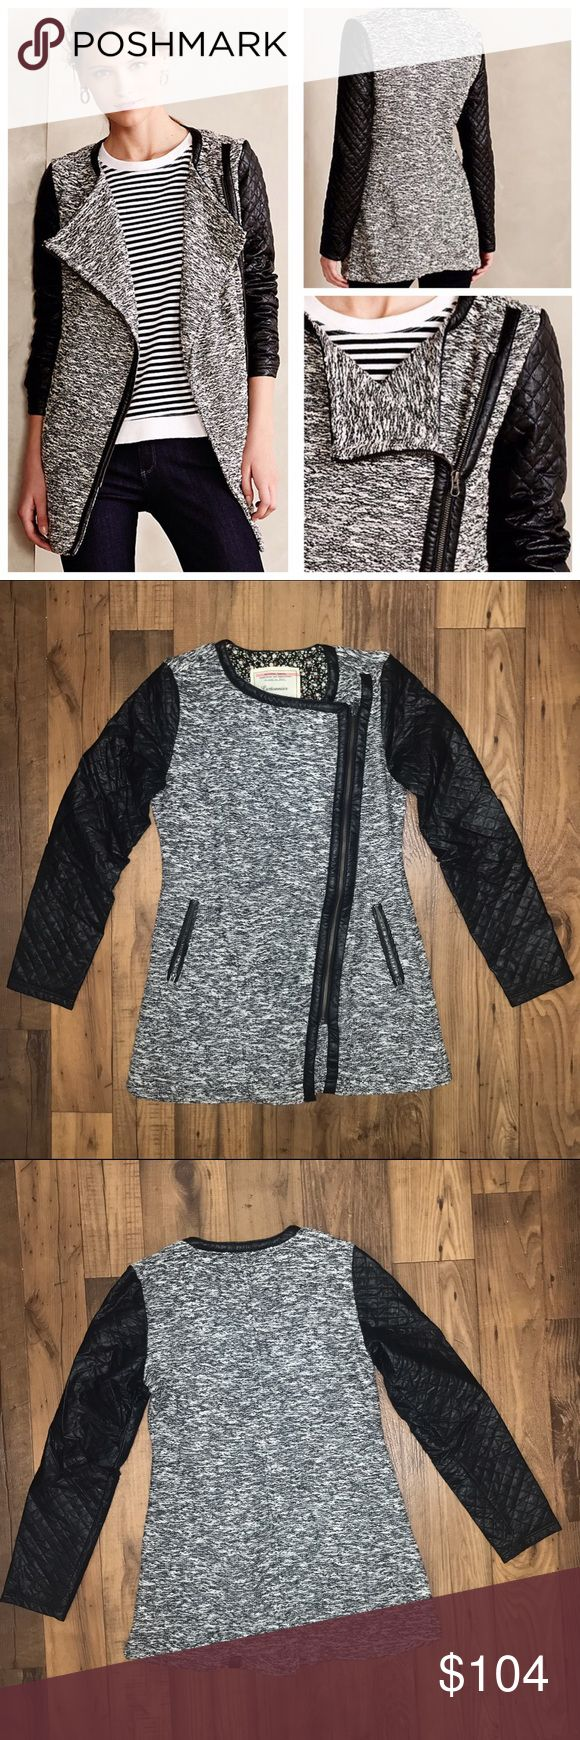 """ANTHRO Tela Moto Jacket Anthropologie Tela Mixed Media Moto Jacket with Quilted Sleeves and Angled Zipper for a trendy edgy look  Size S Chest: approx 18.5"""" Length: approx 30.5"""" Sleeve length: approx 18.75""""  Perfect condition, worn only once!!  💲💲OFFERS WELCOME💲💲 ❌❌NO Trades❌❌ Anthropologie Jackets & Coats"""